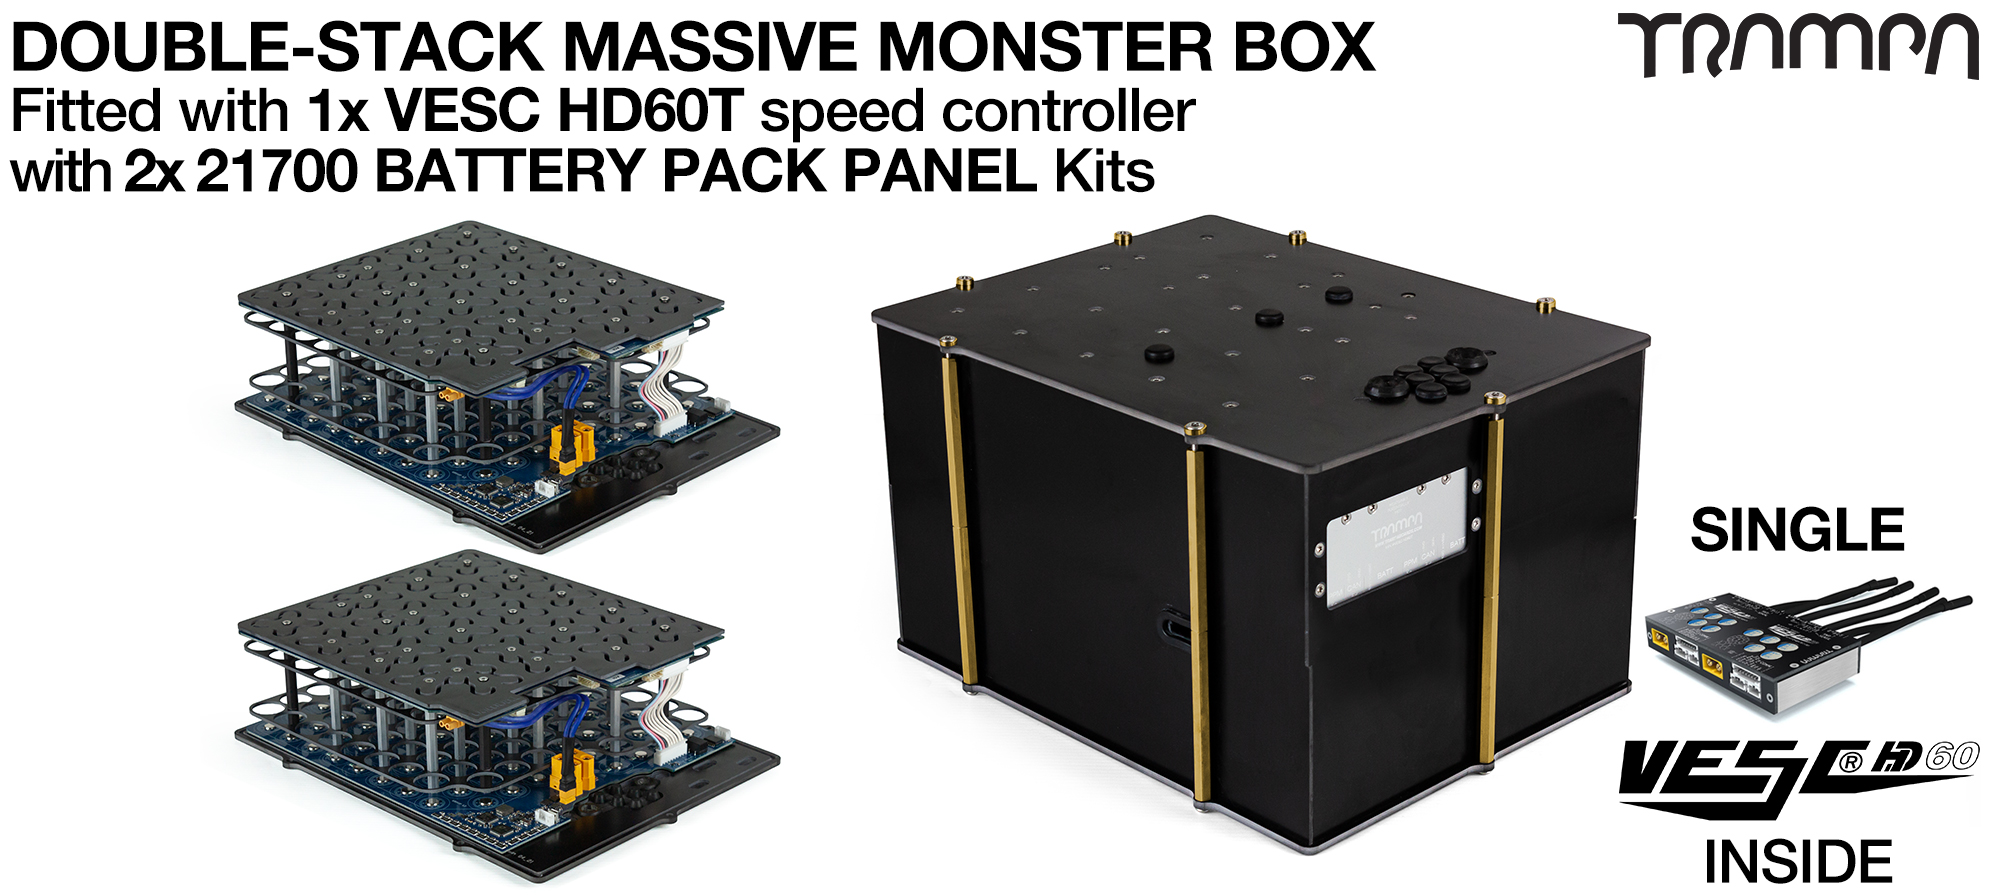 2WD DOUBLE STACK MASSIVE MONSTER Box with 21700 PCB Pack with 1x VESC HD-60Twin - NO CELLS